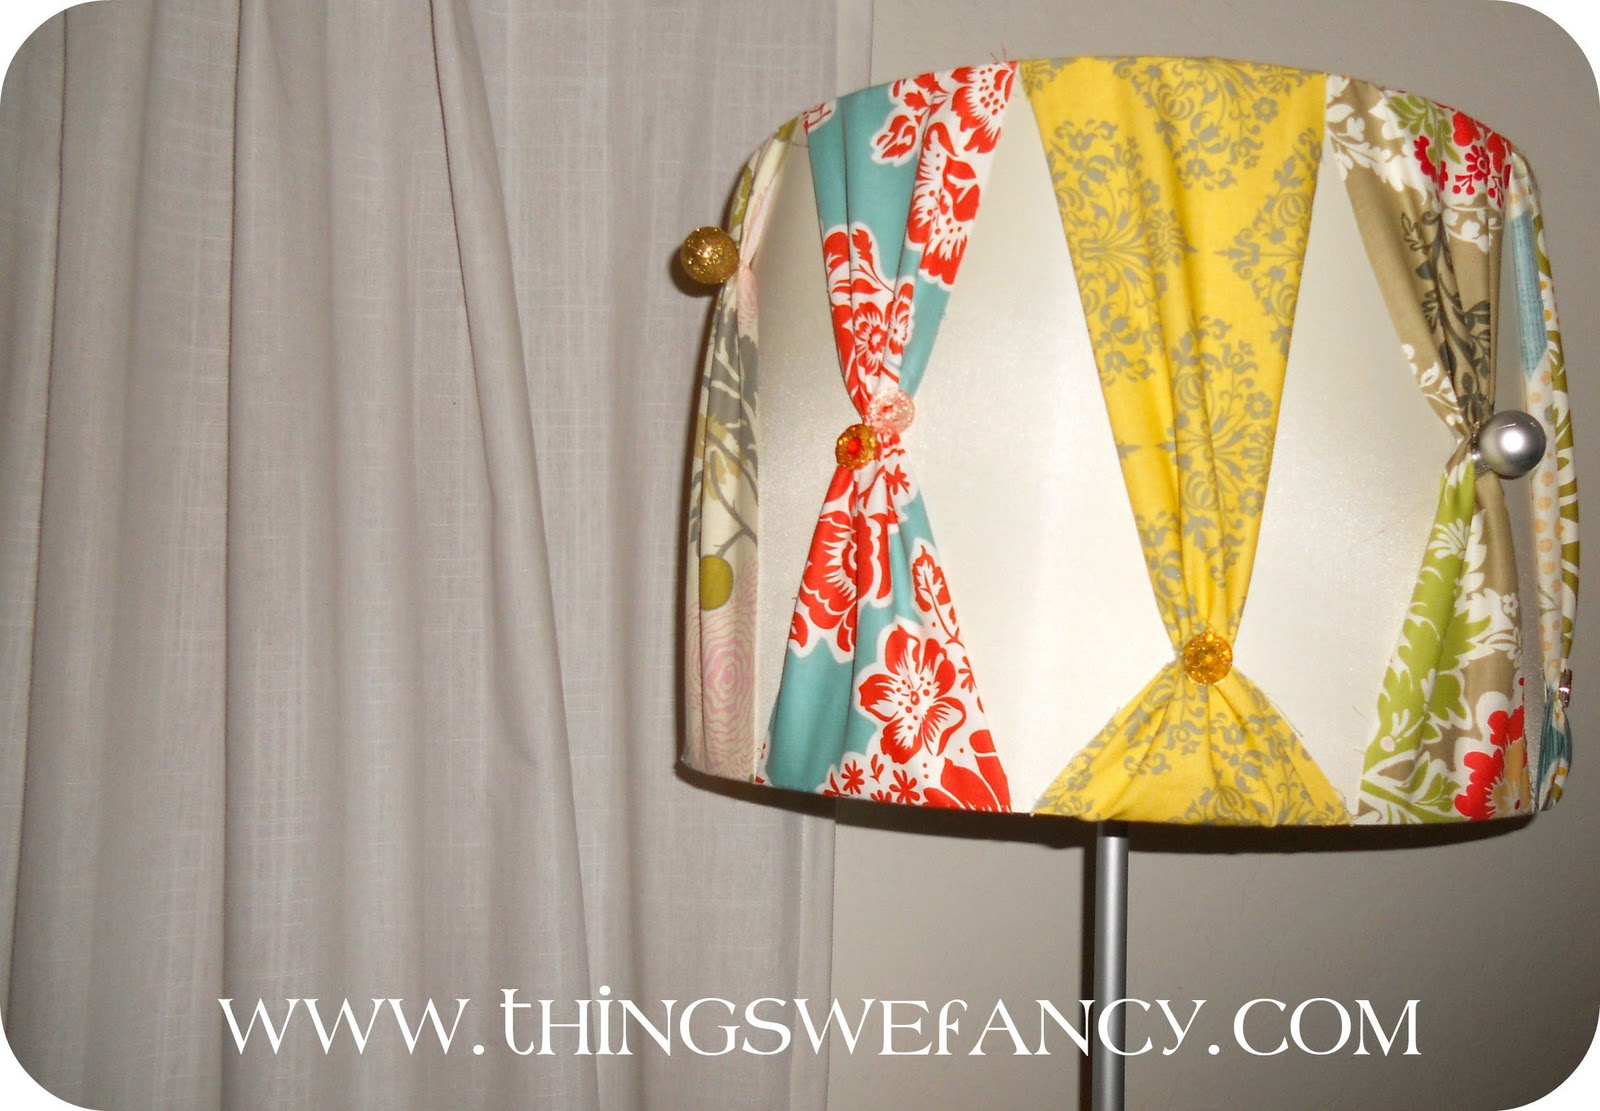 Fancy diy lampshade diy show off diy decorating and home improvement blogdiy show off - Diy lamp shade ...